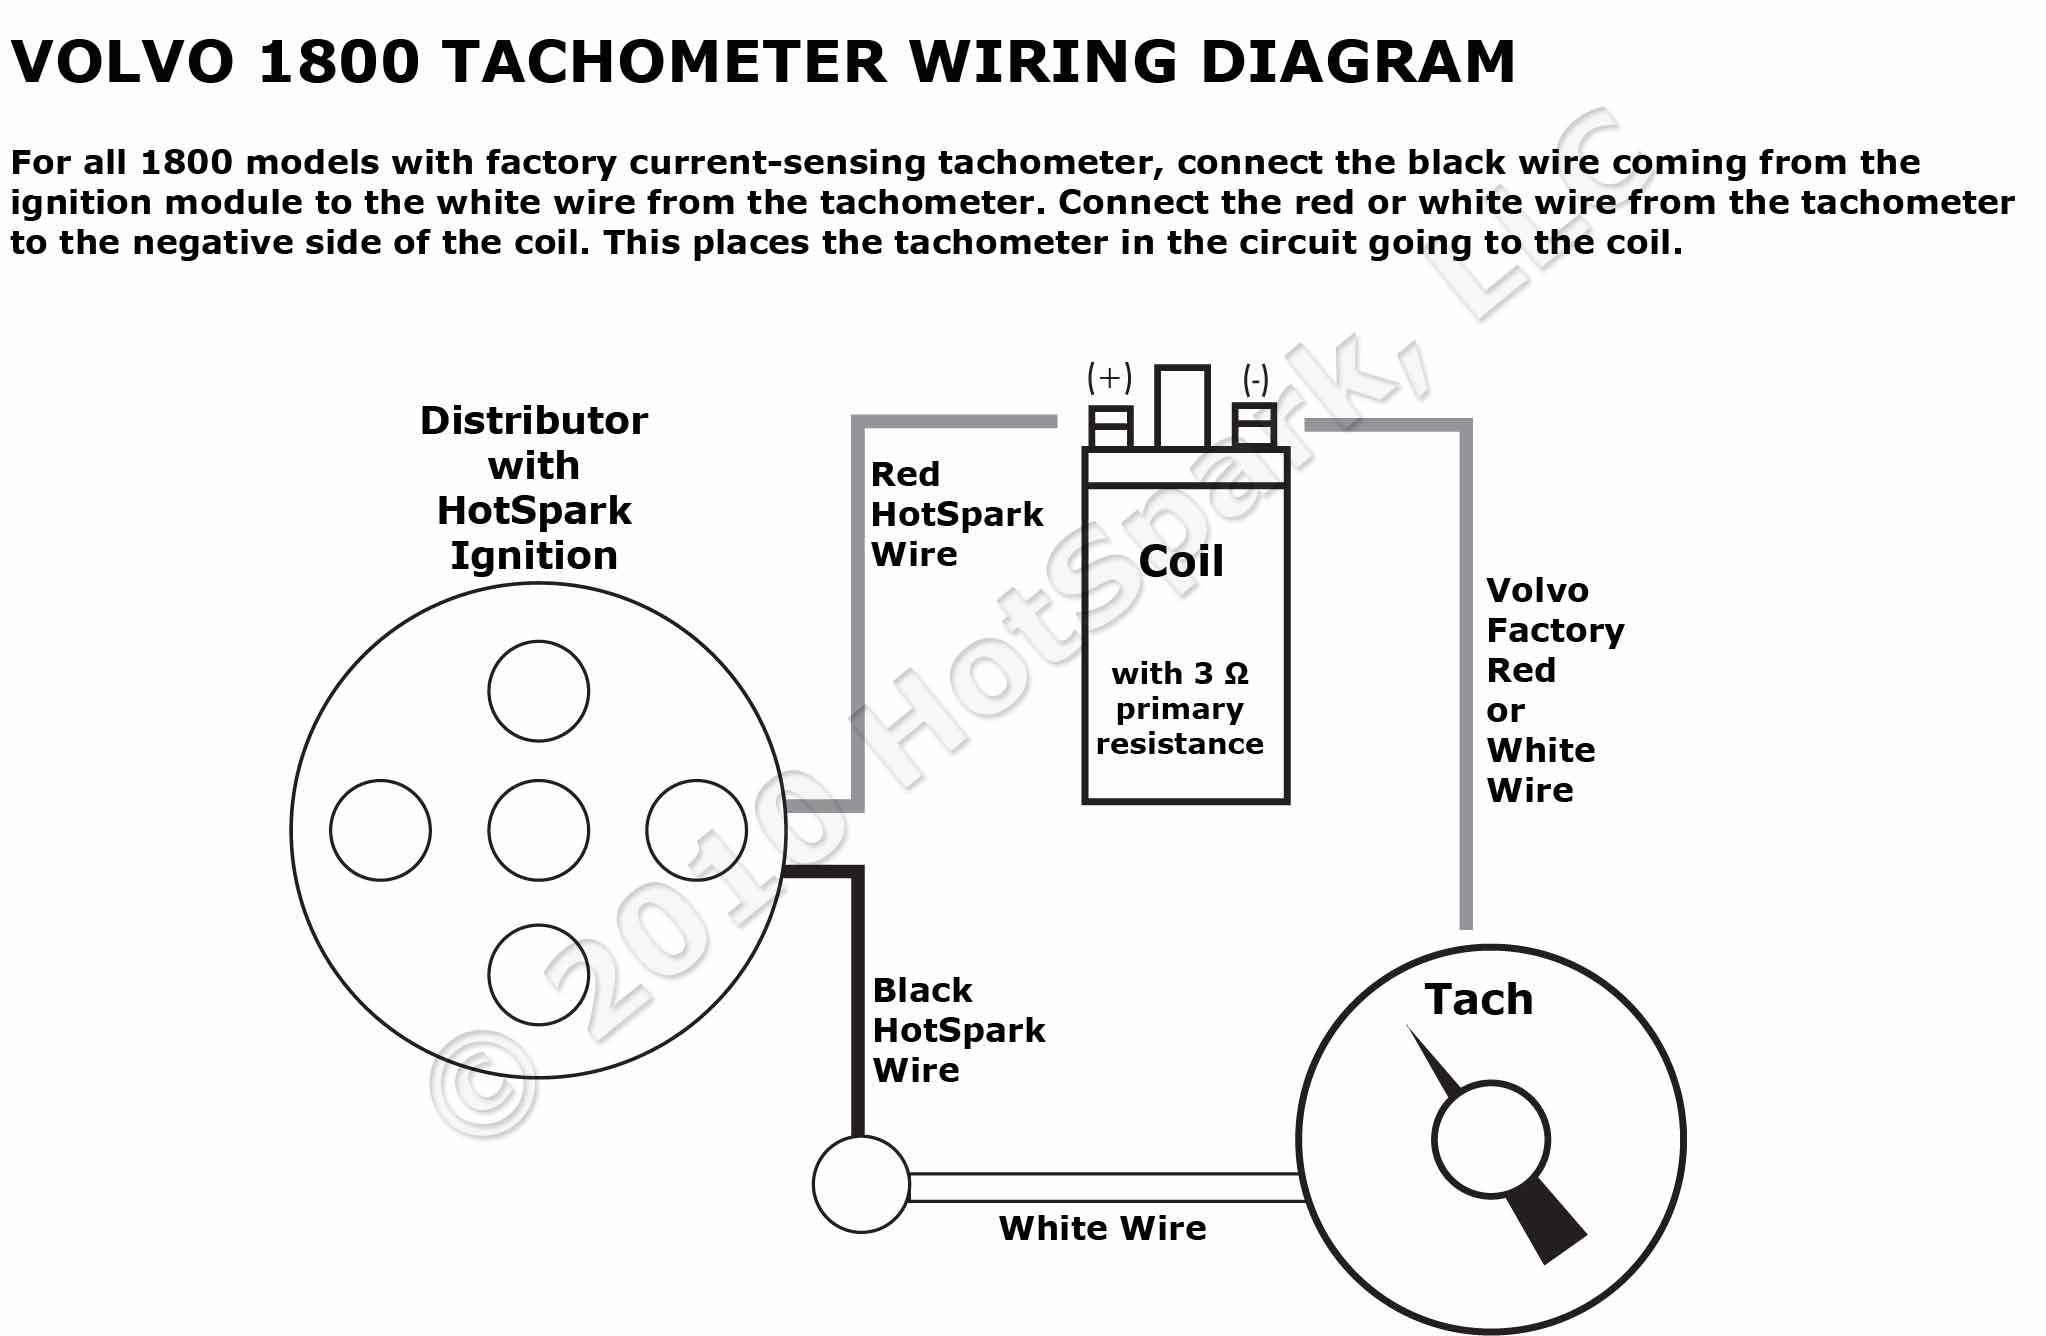 Volvo 1800 Tachometer and Hot Spark Wiring Diagram tach wiring diagram autometer tach wiring diagram \u2022 wiring motorcycle tachometer wiring diagram at bayanpartner.co